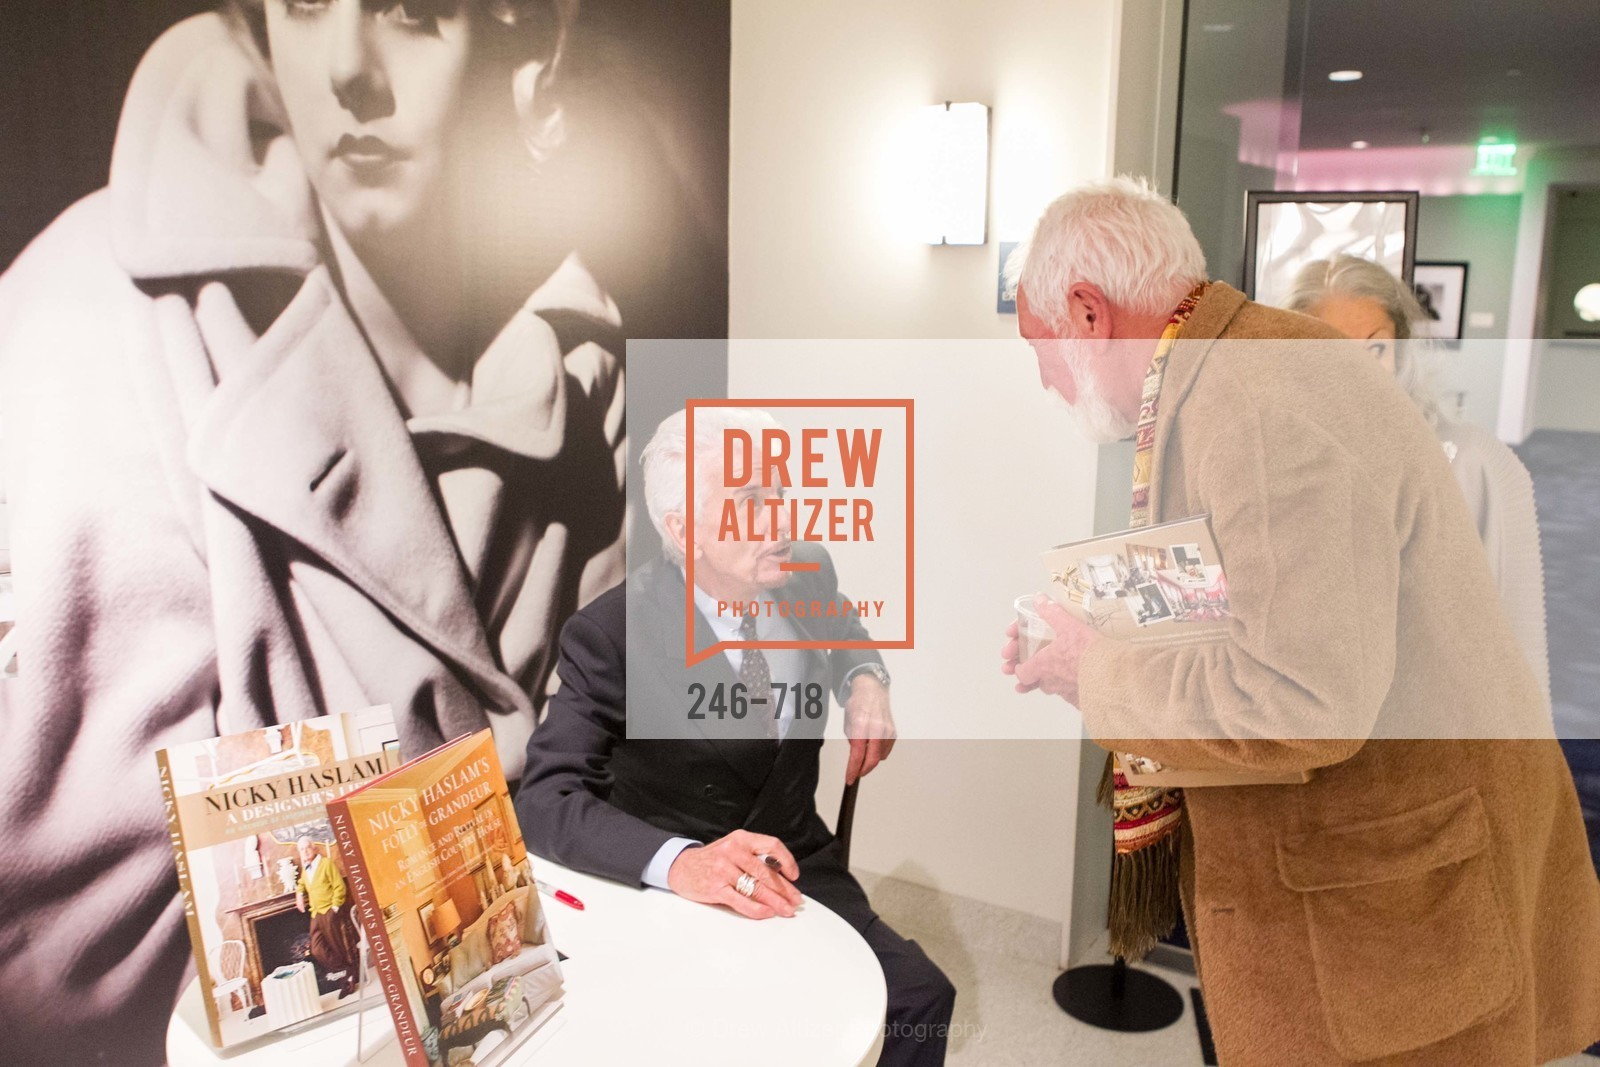 Nicky Haslam, Lewis Sykes, ICAA Hosts NICKY HASLAM'S Lecture and Book Signing, US, May 12th, 2015,Drew Altizer, Drew Altizer Photography, full-service agency, private events, San Francisco photographer, photographer california